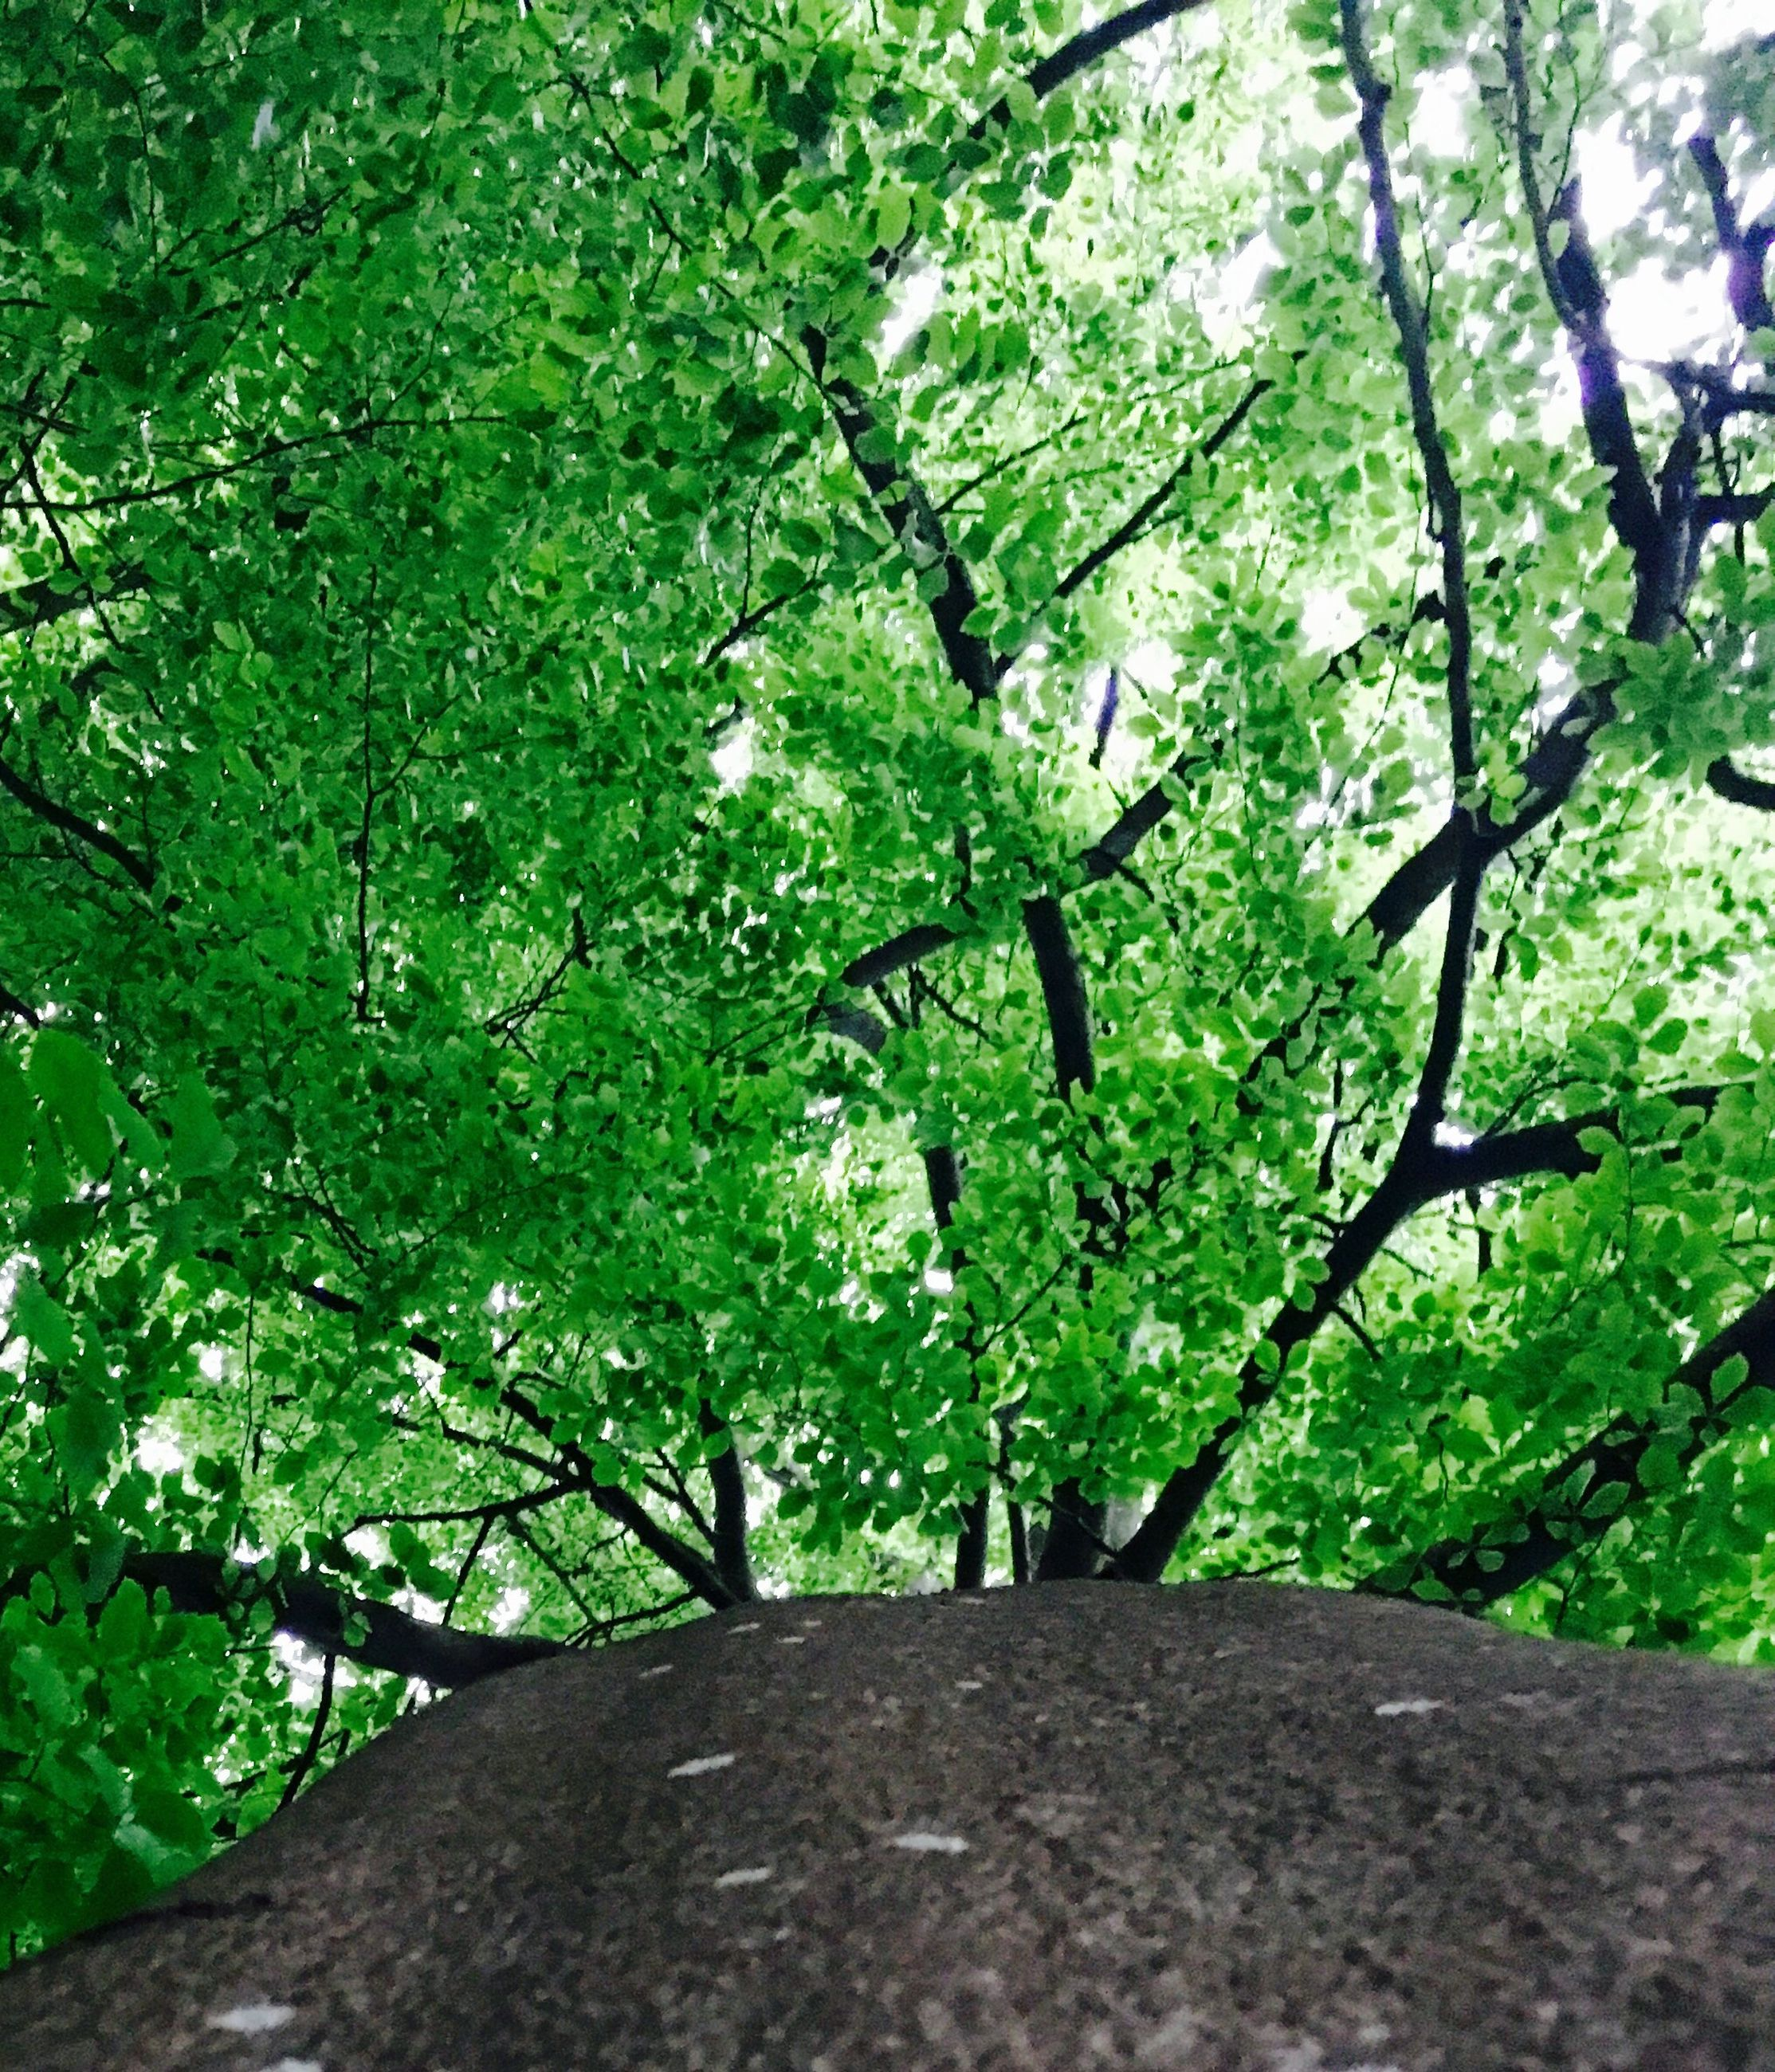 tree, growth, green color, branch, nature, tranquility, leaf, lush foliage, beauty in nature, tree trunk, low angle view, forest, green, tranquil scene, plant, day, outdoors, scenics, sunlight, no people